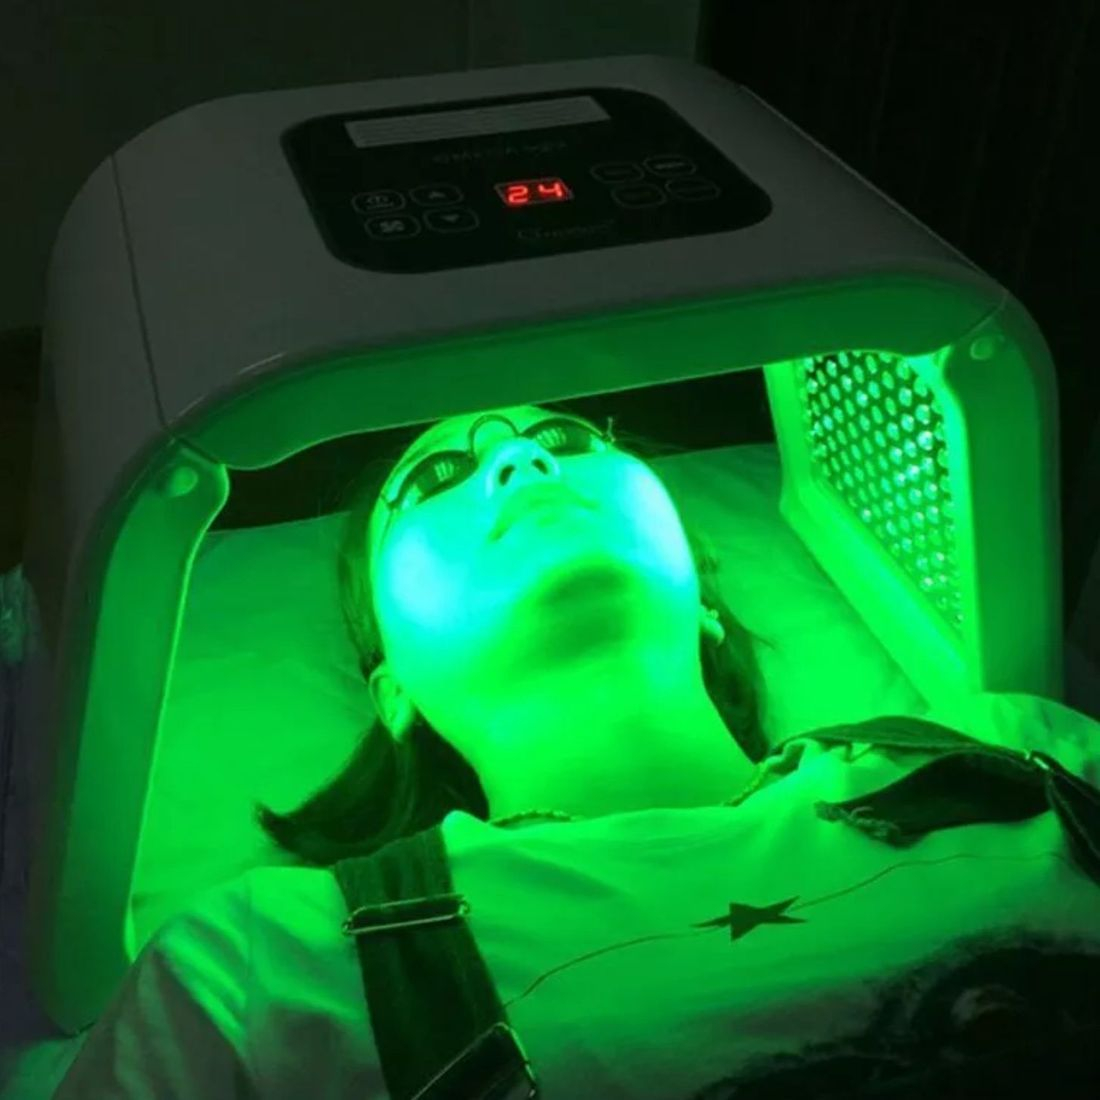 Green LED light therapy, phototherapy calming facial pigmentation creativity beauty solutions Reading